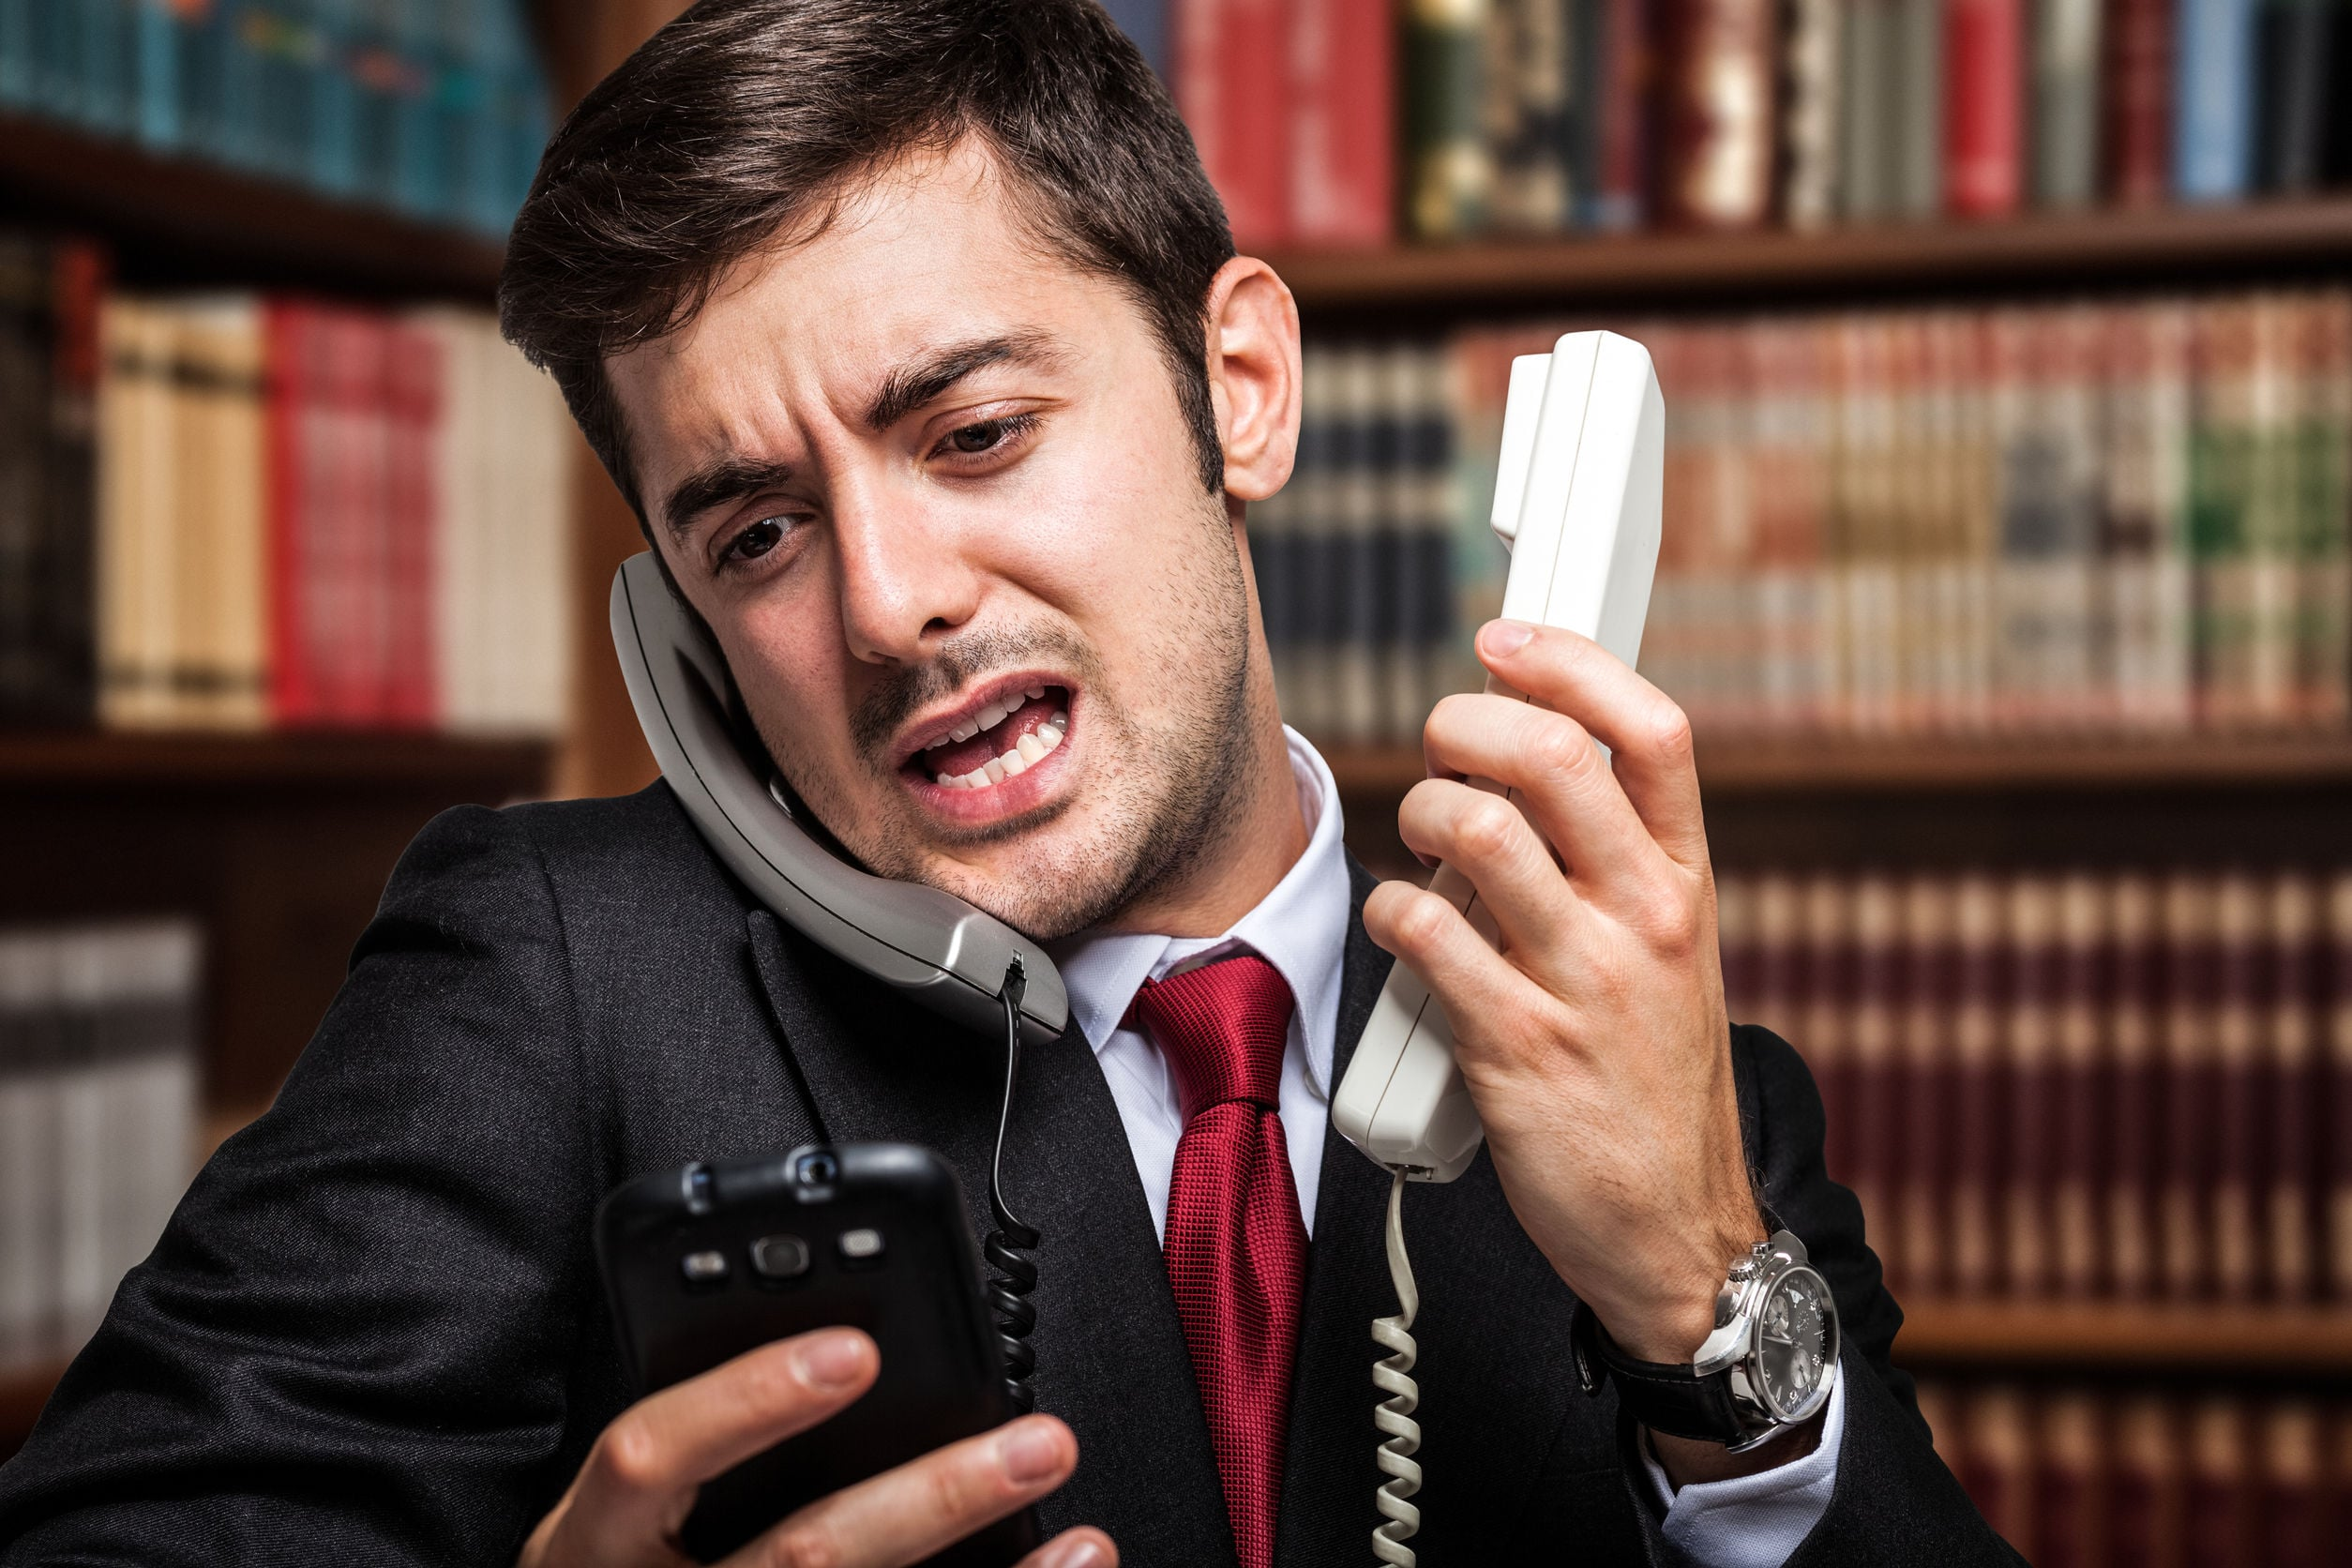 Types of Damages in a Legal Malpractice Lawsuit